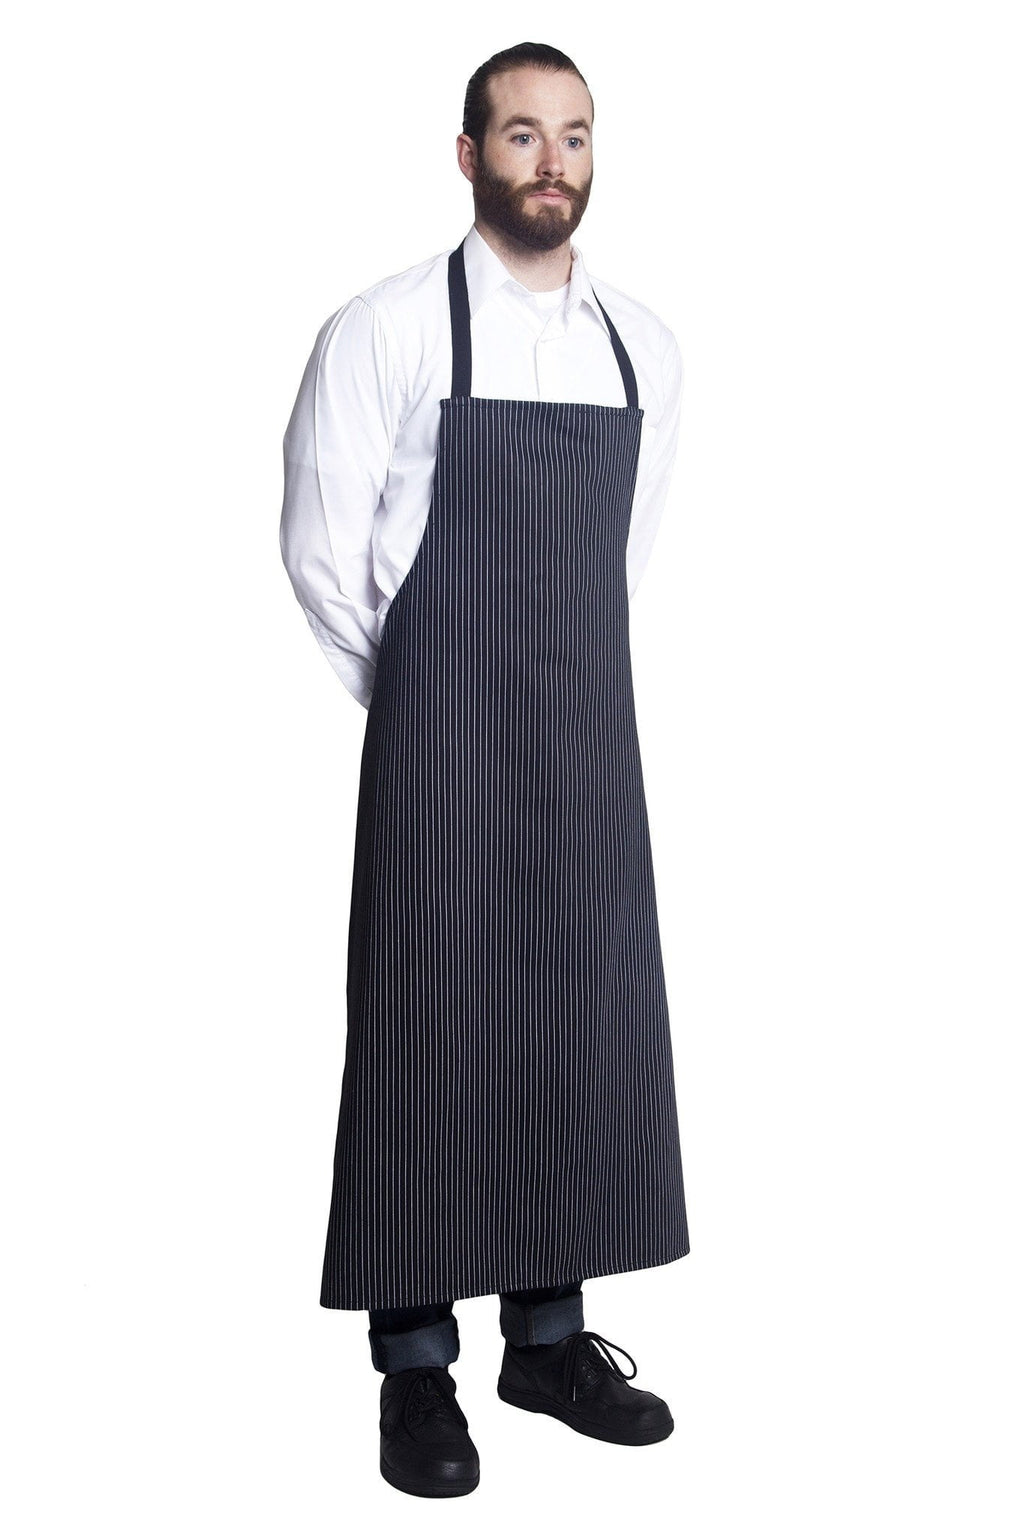 Bragard Travel Bib Chef Apron No Pocket Side